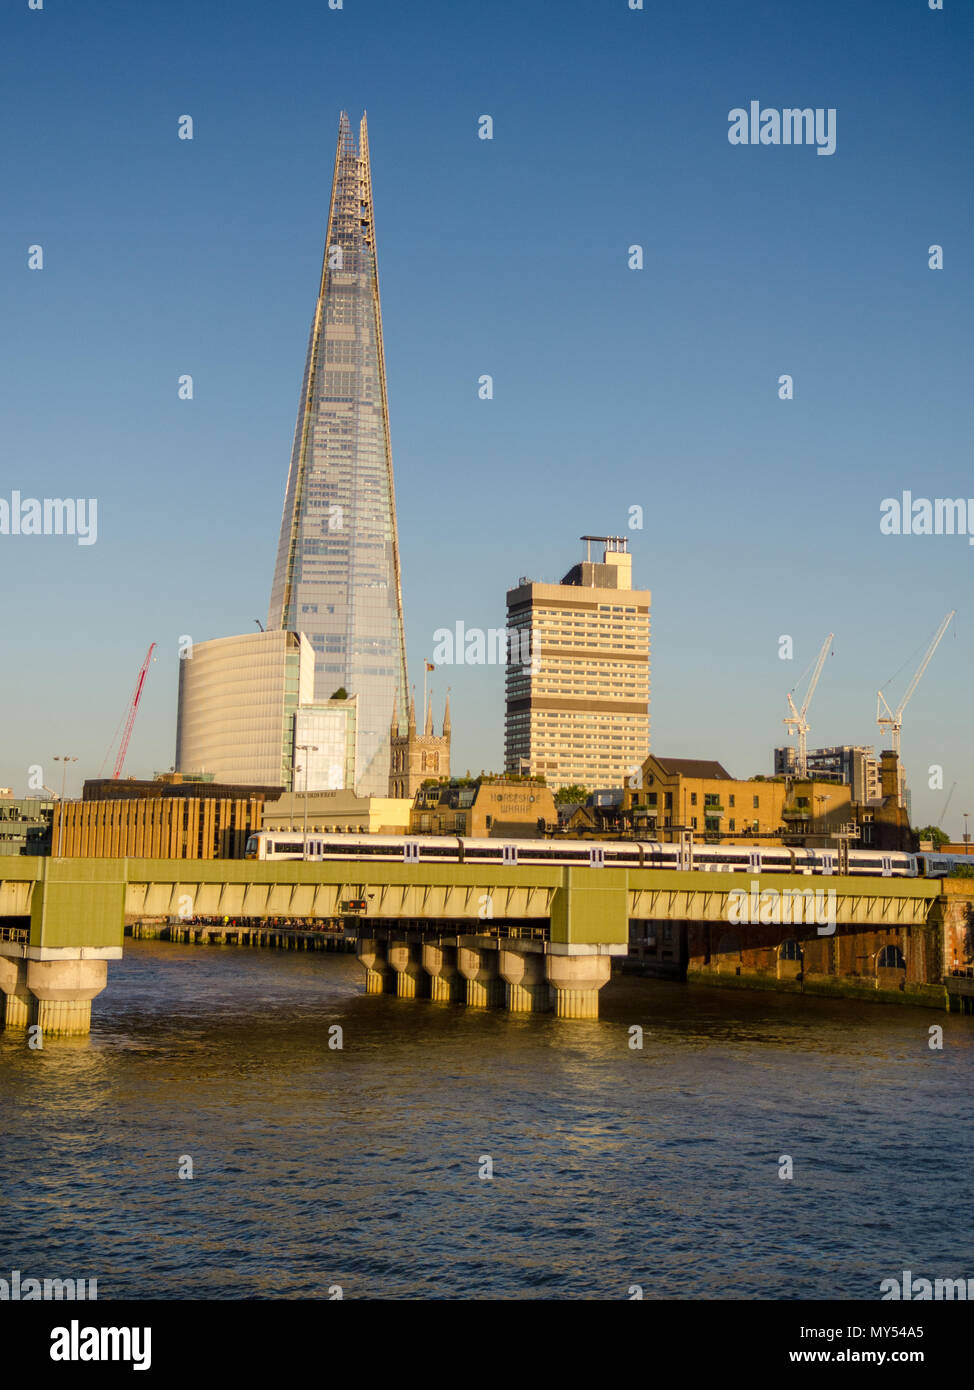 London, England, UK - June 10, 2015: A SouthEastern commuter train crosses the River Thames into London Cannon Street railway station with a backdrop  - Stock Image